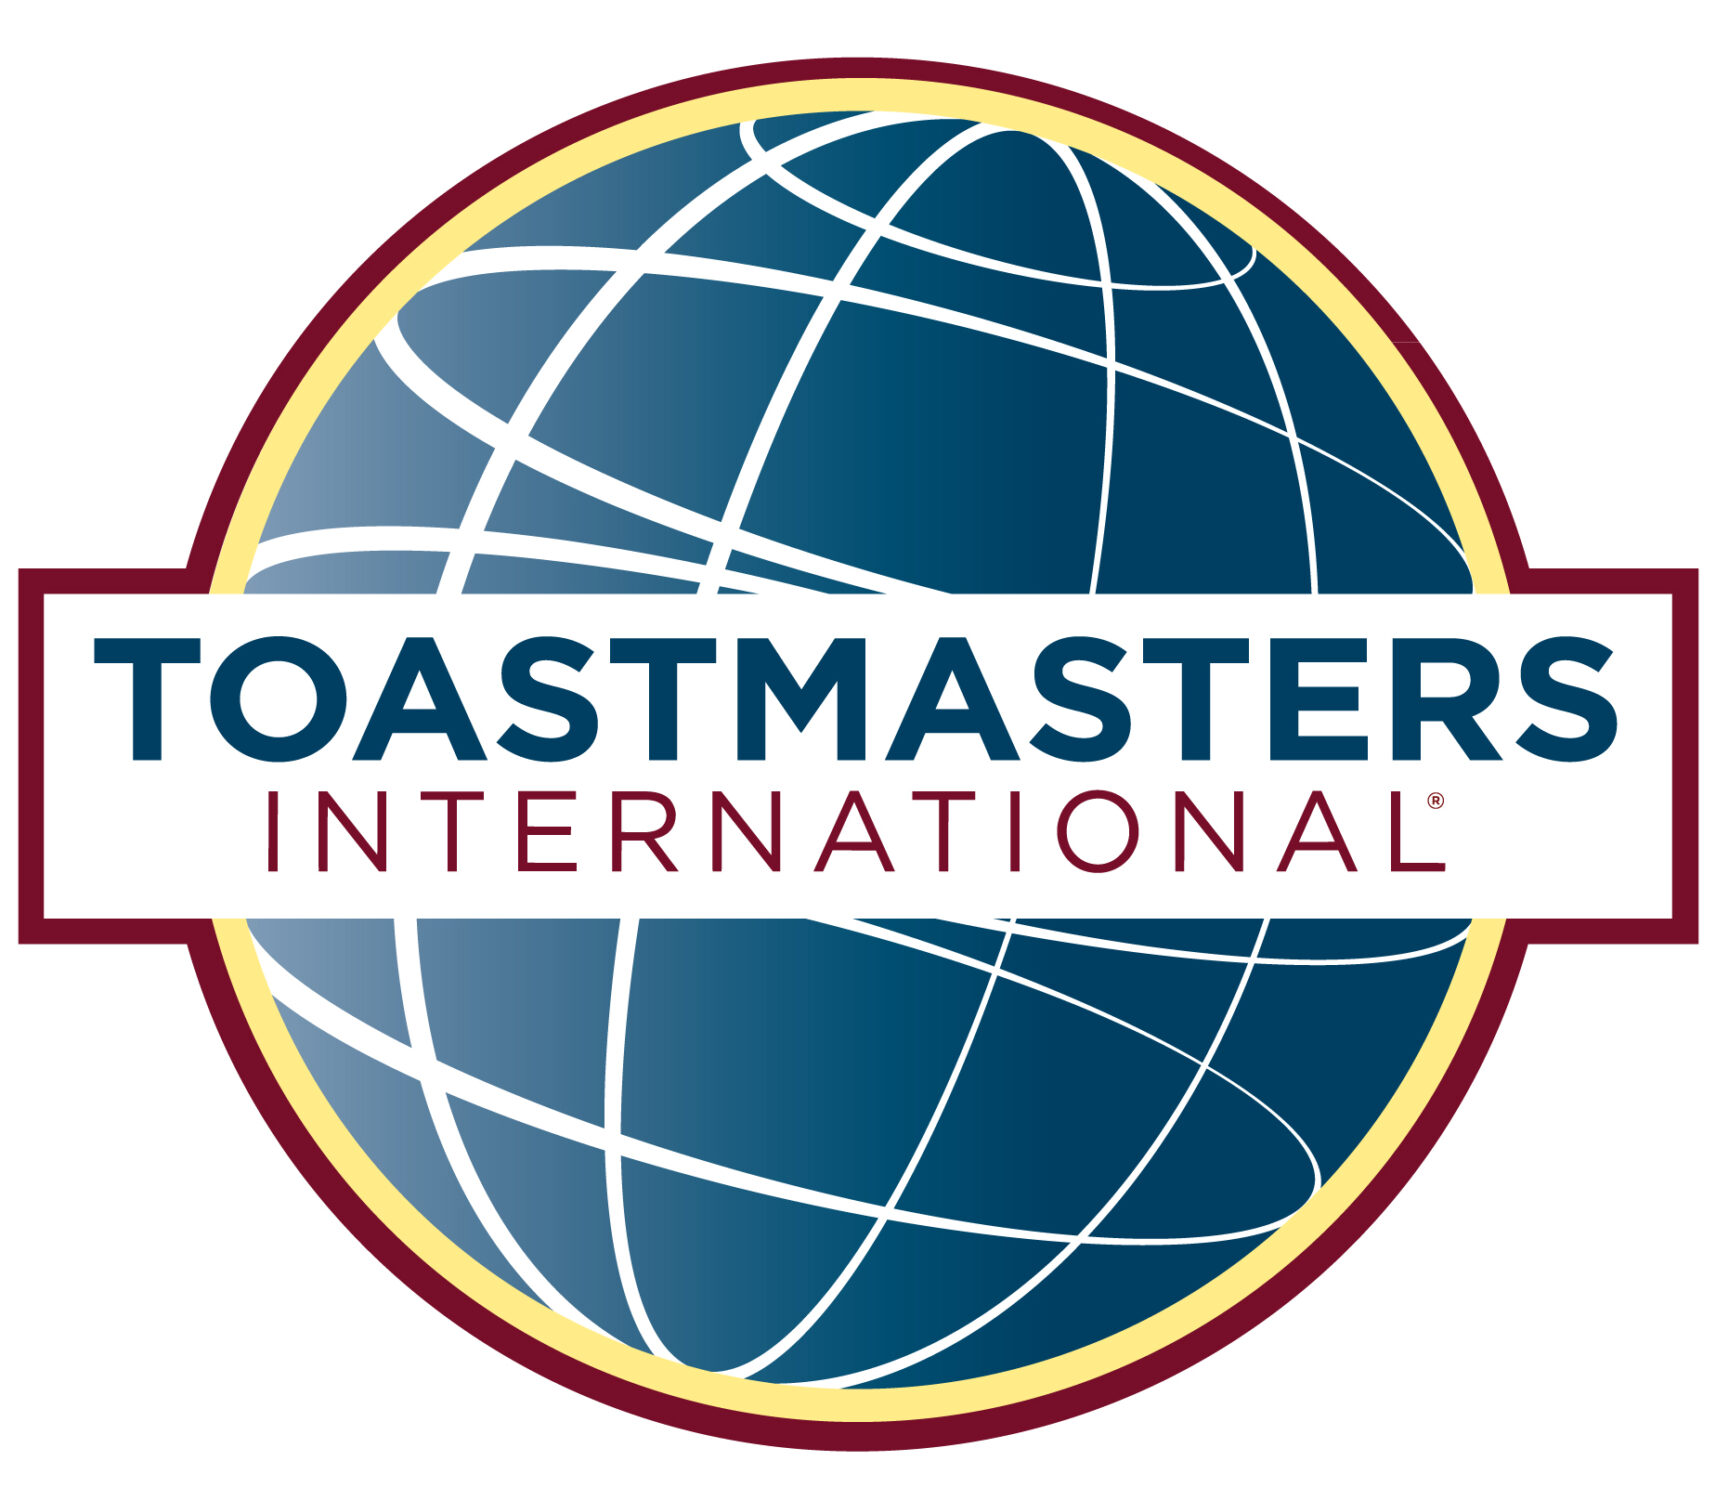 Toastmasters is a great choice for adult learning